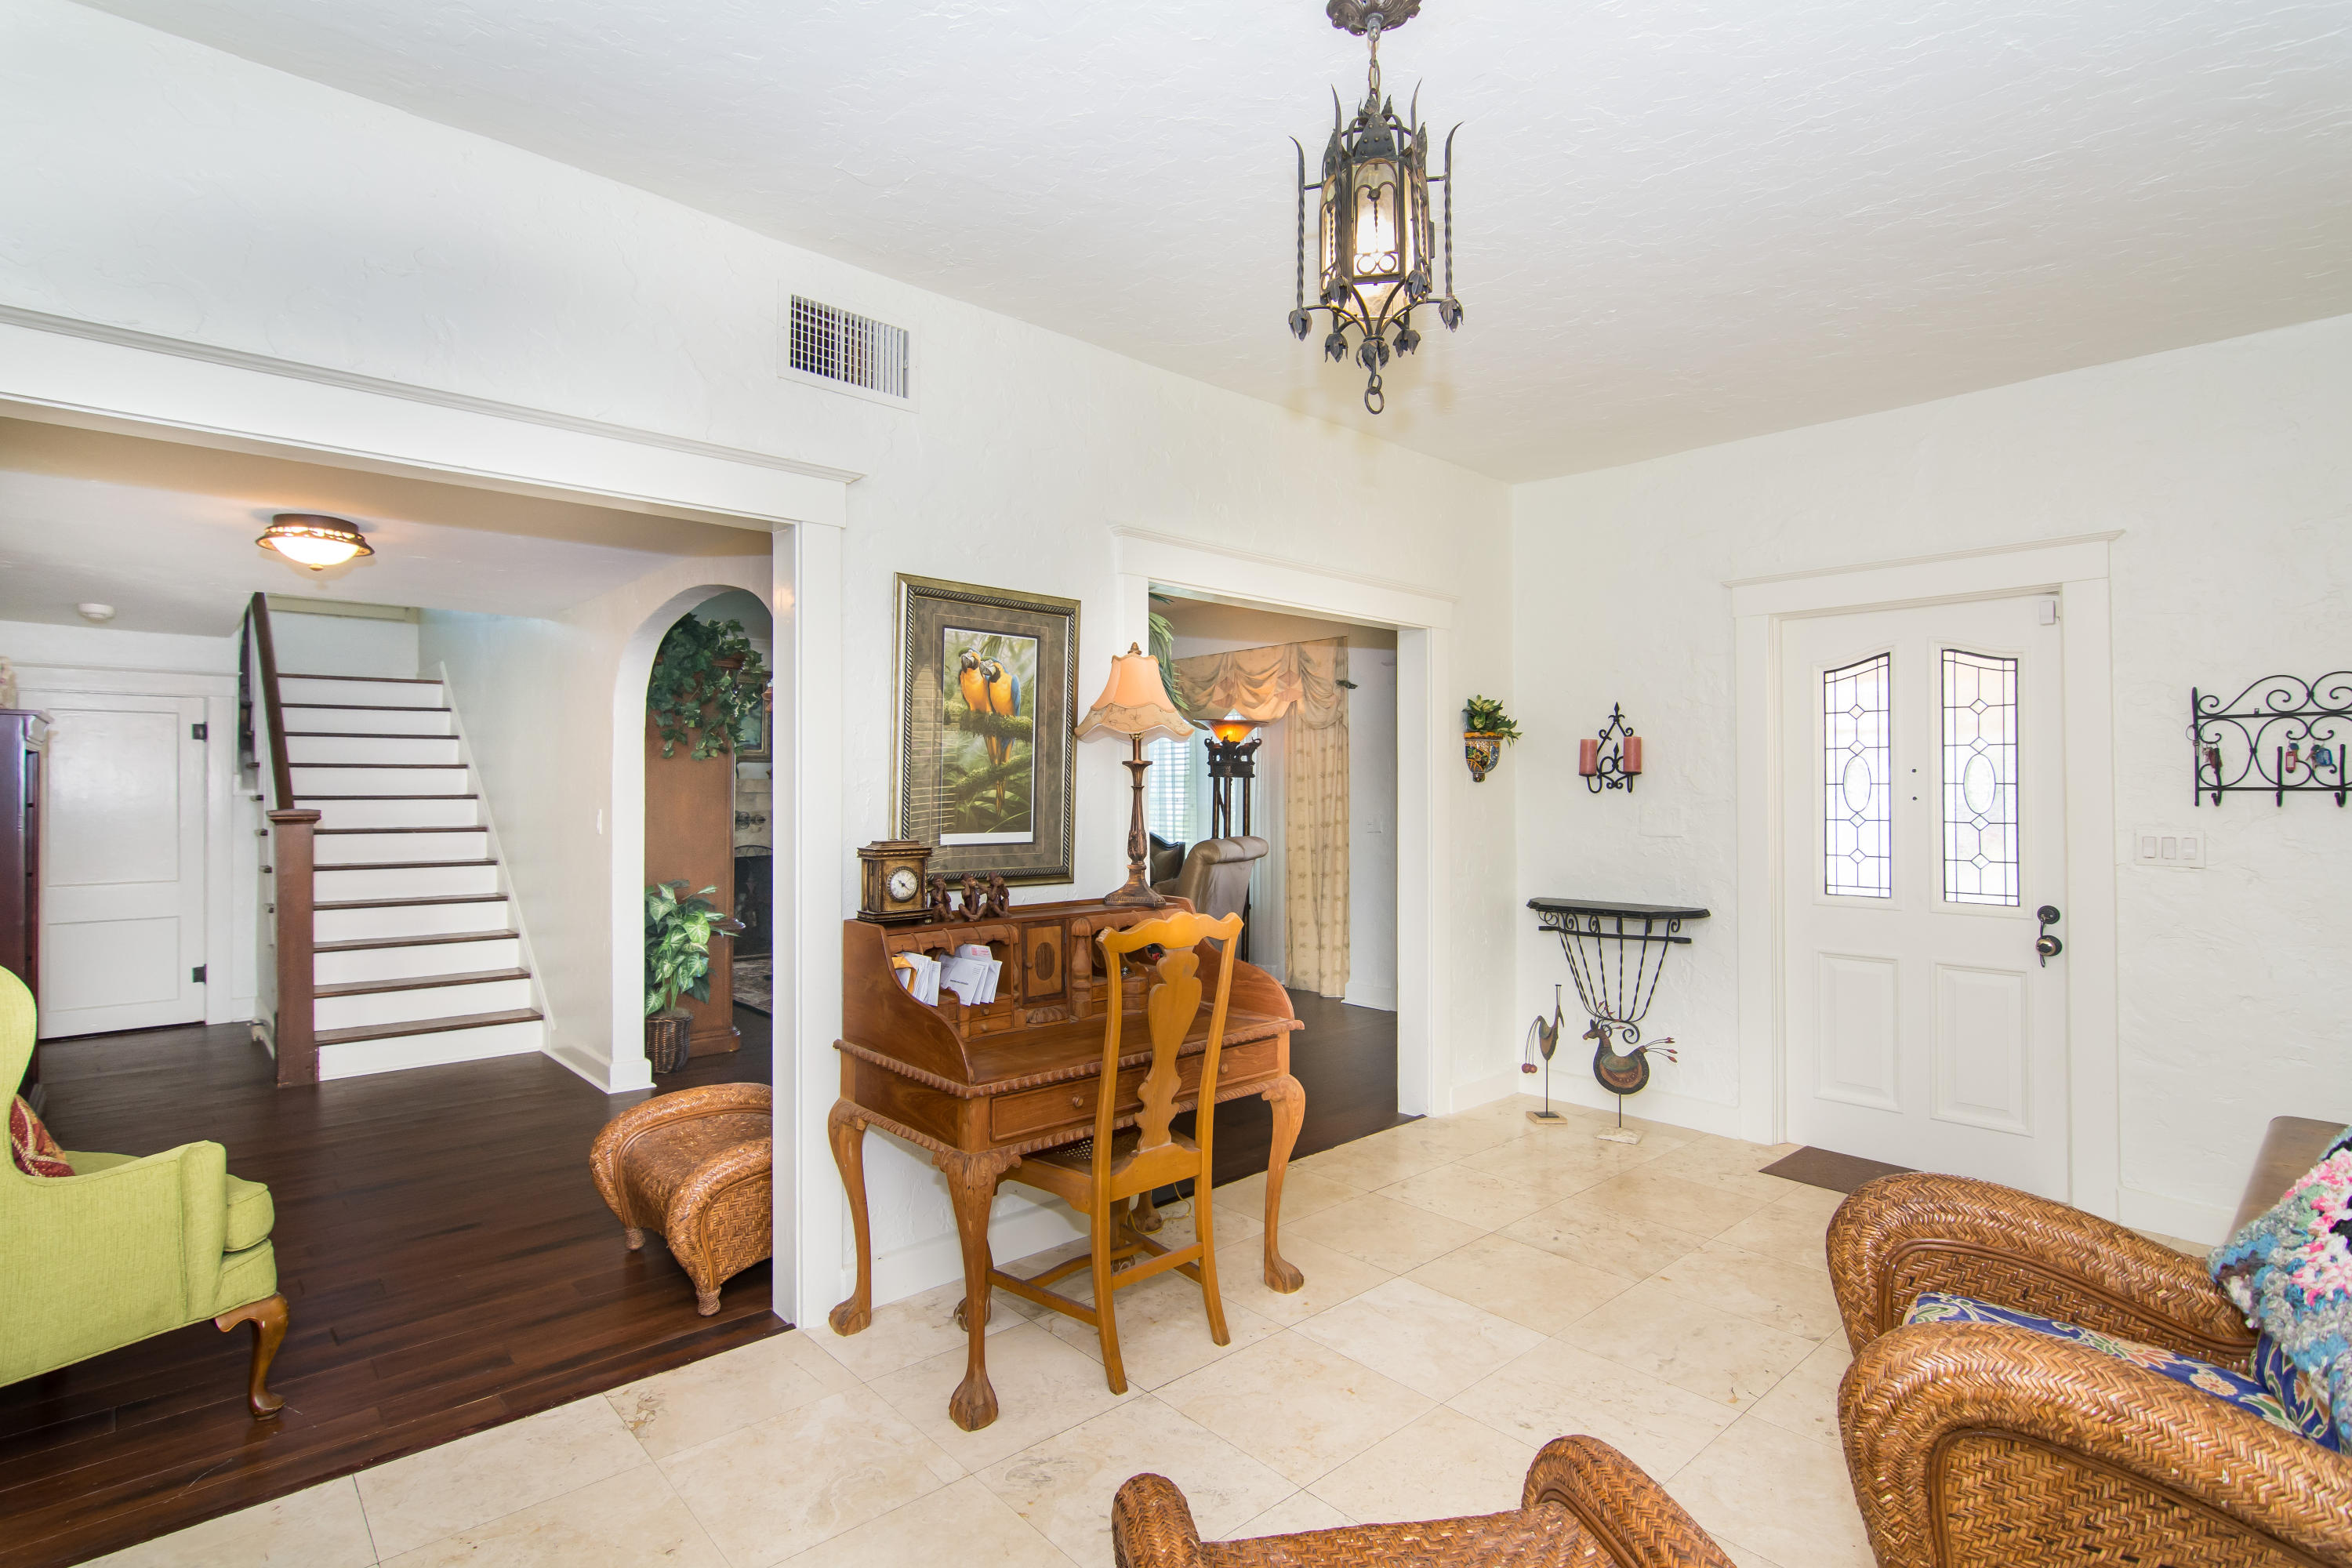 LAKE PARK HOMES FOR SALE